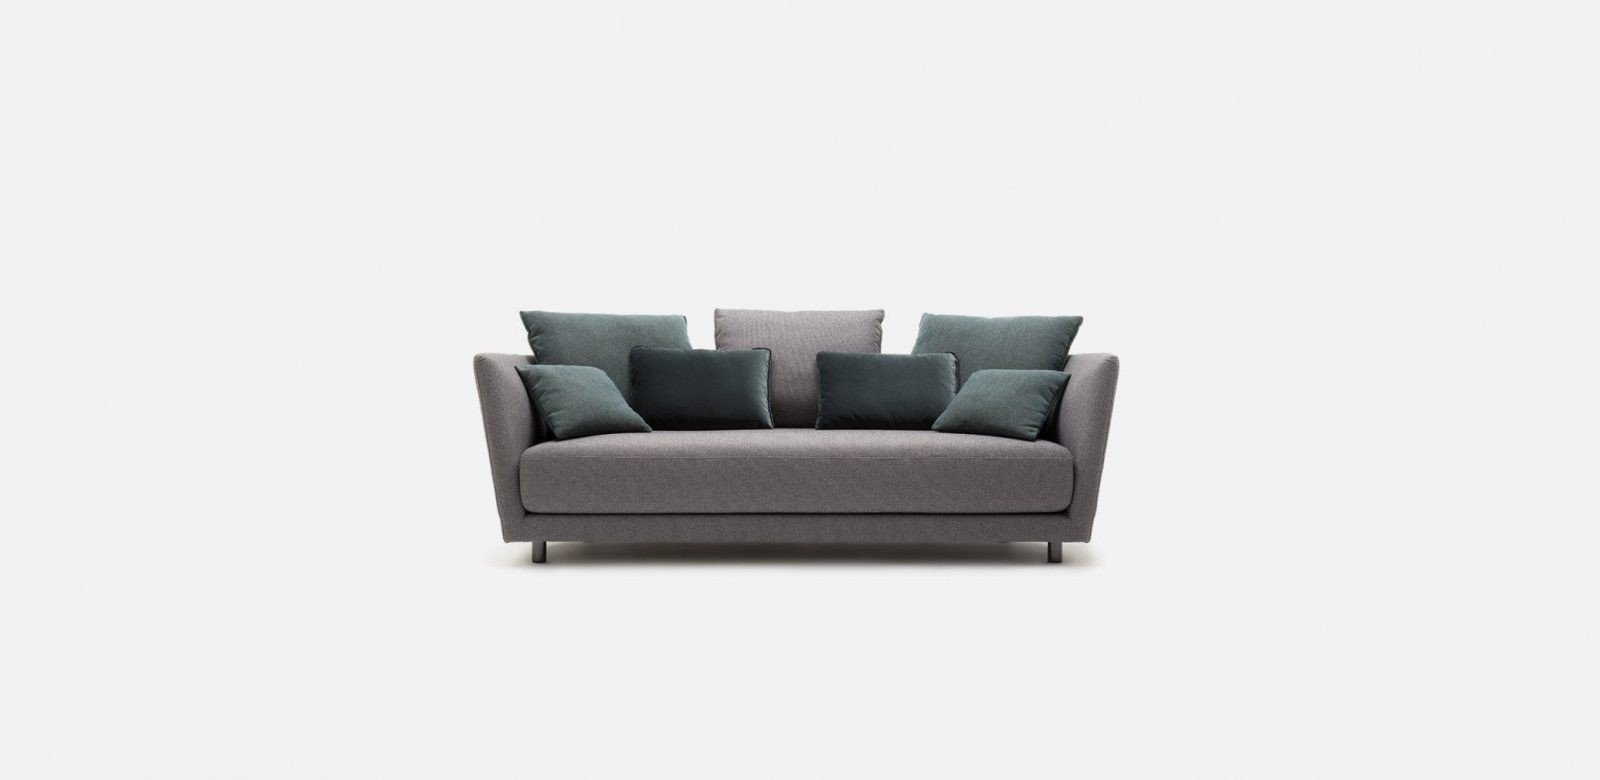 Sofas von Rolf Benz Sofa 322 Photo